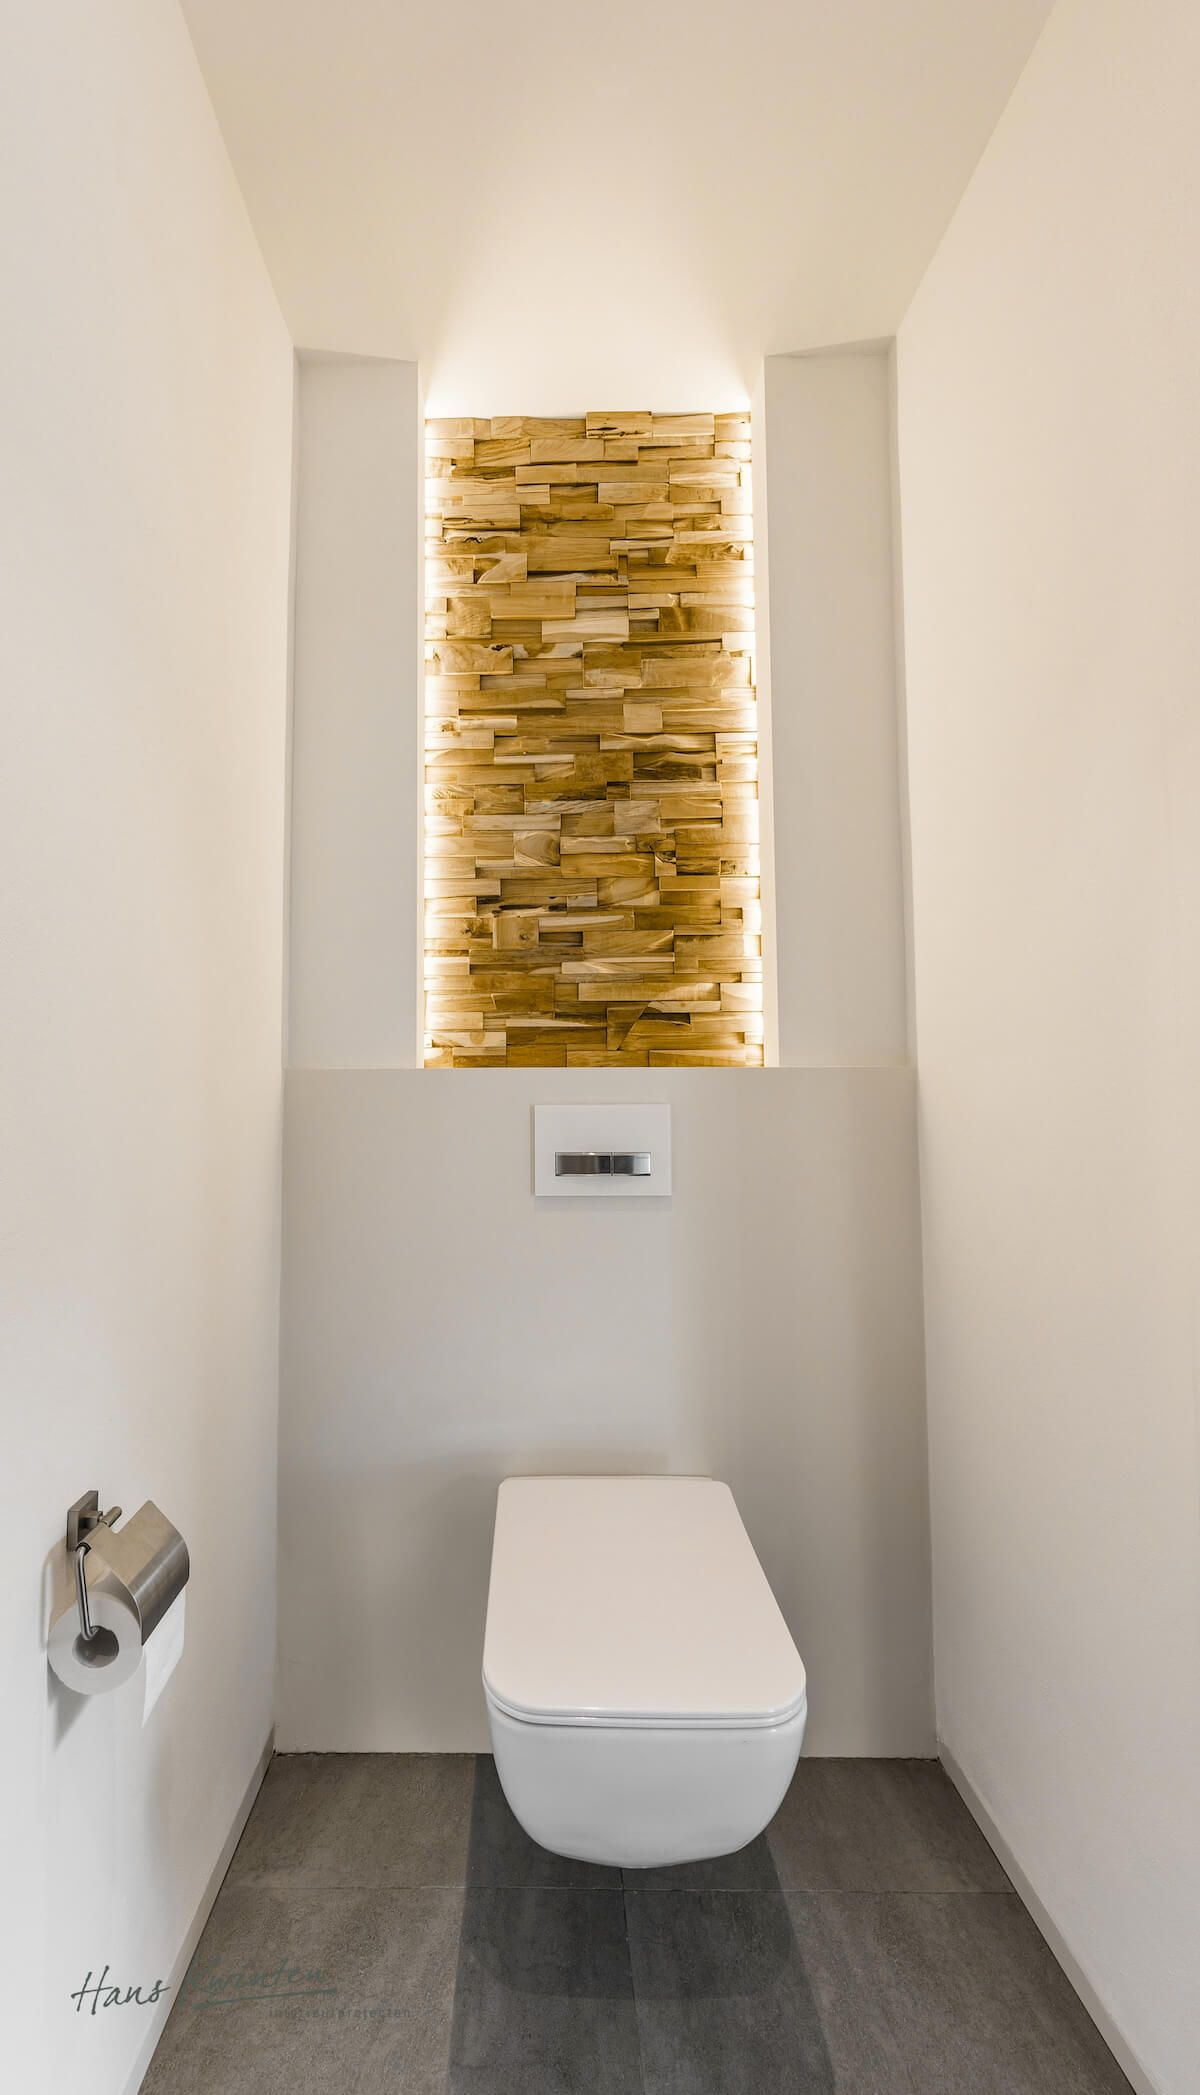 Hans Kwinten Interieur | lighting | Pinterest | Gäste wc, Badezimmer ...